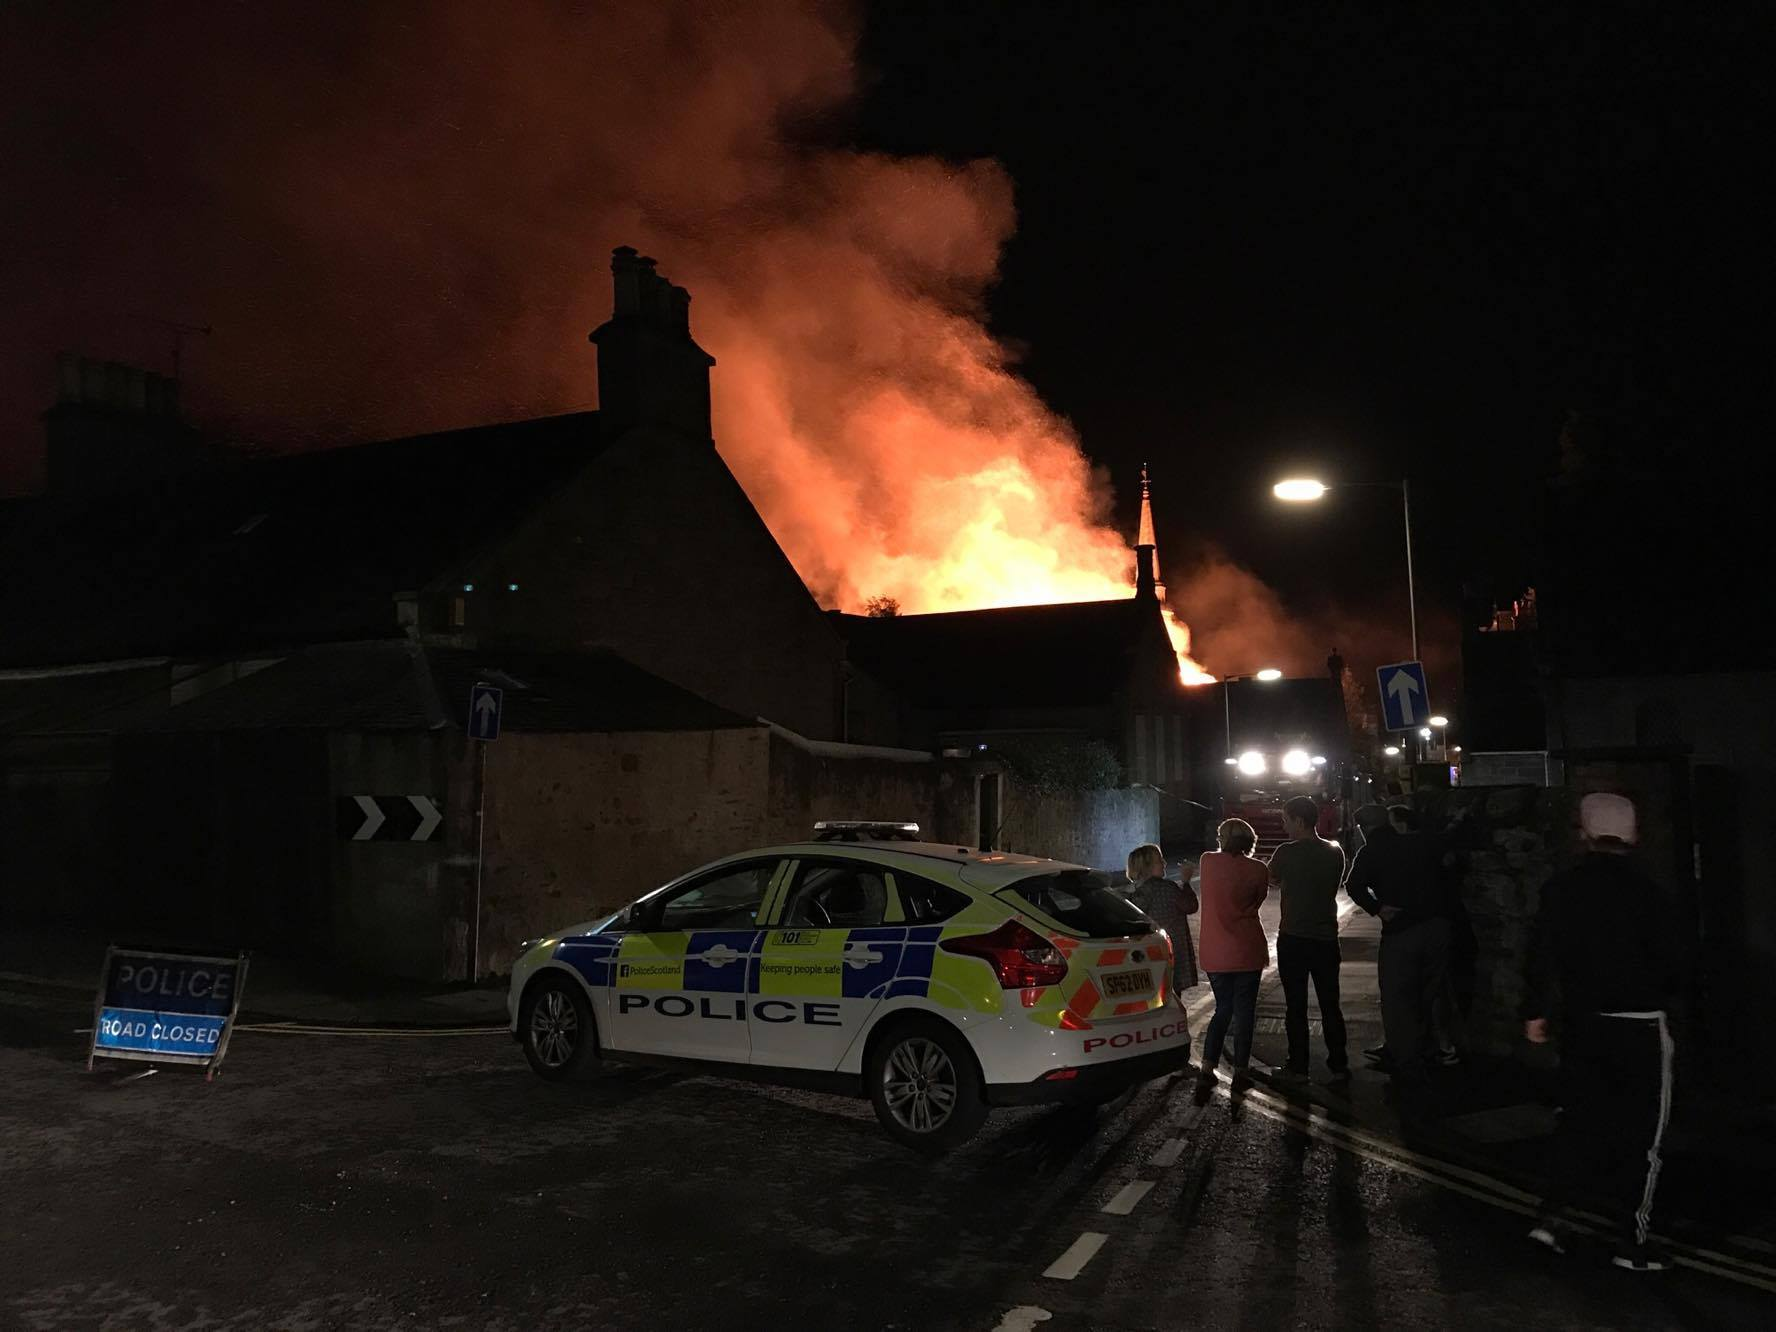 Locals look on as the fire ravages at the Lochee Old Parish Church